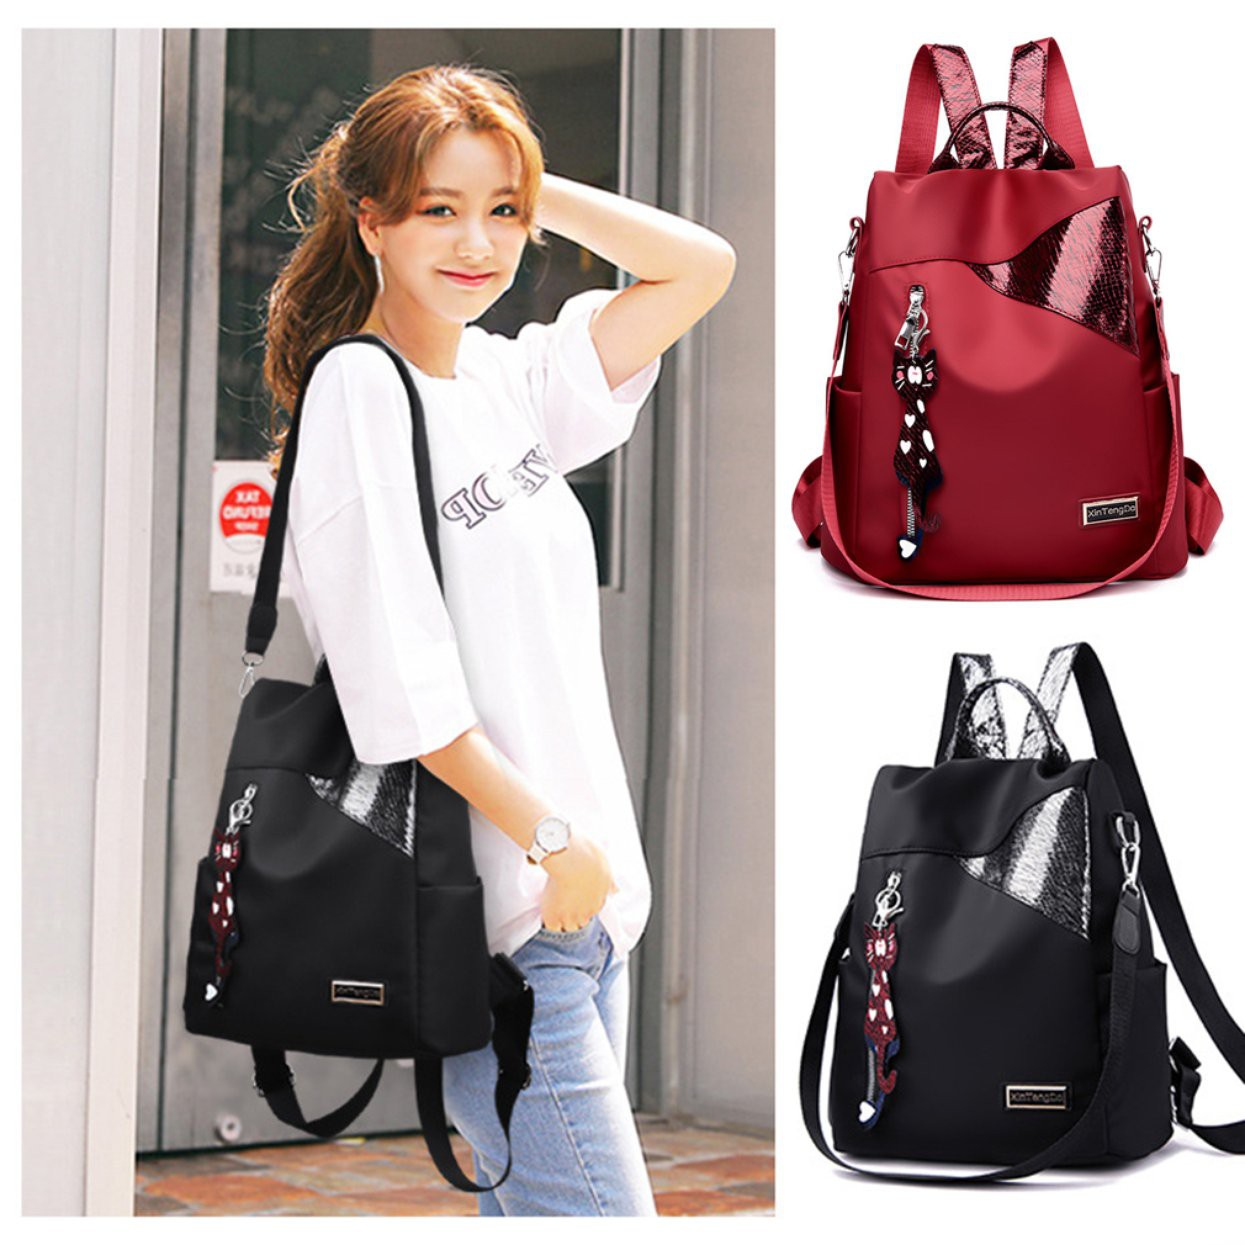 &SLS& Leisure outdoor backpack Female Oxford cloth Solid color Simple style large capacity bag